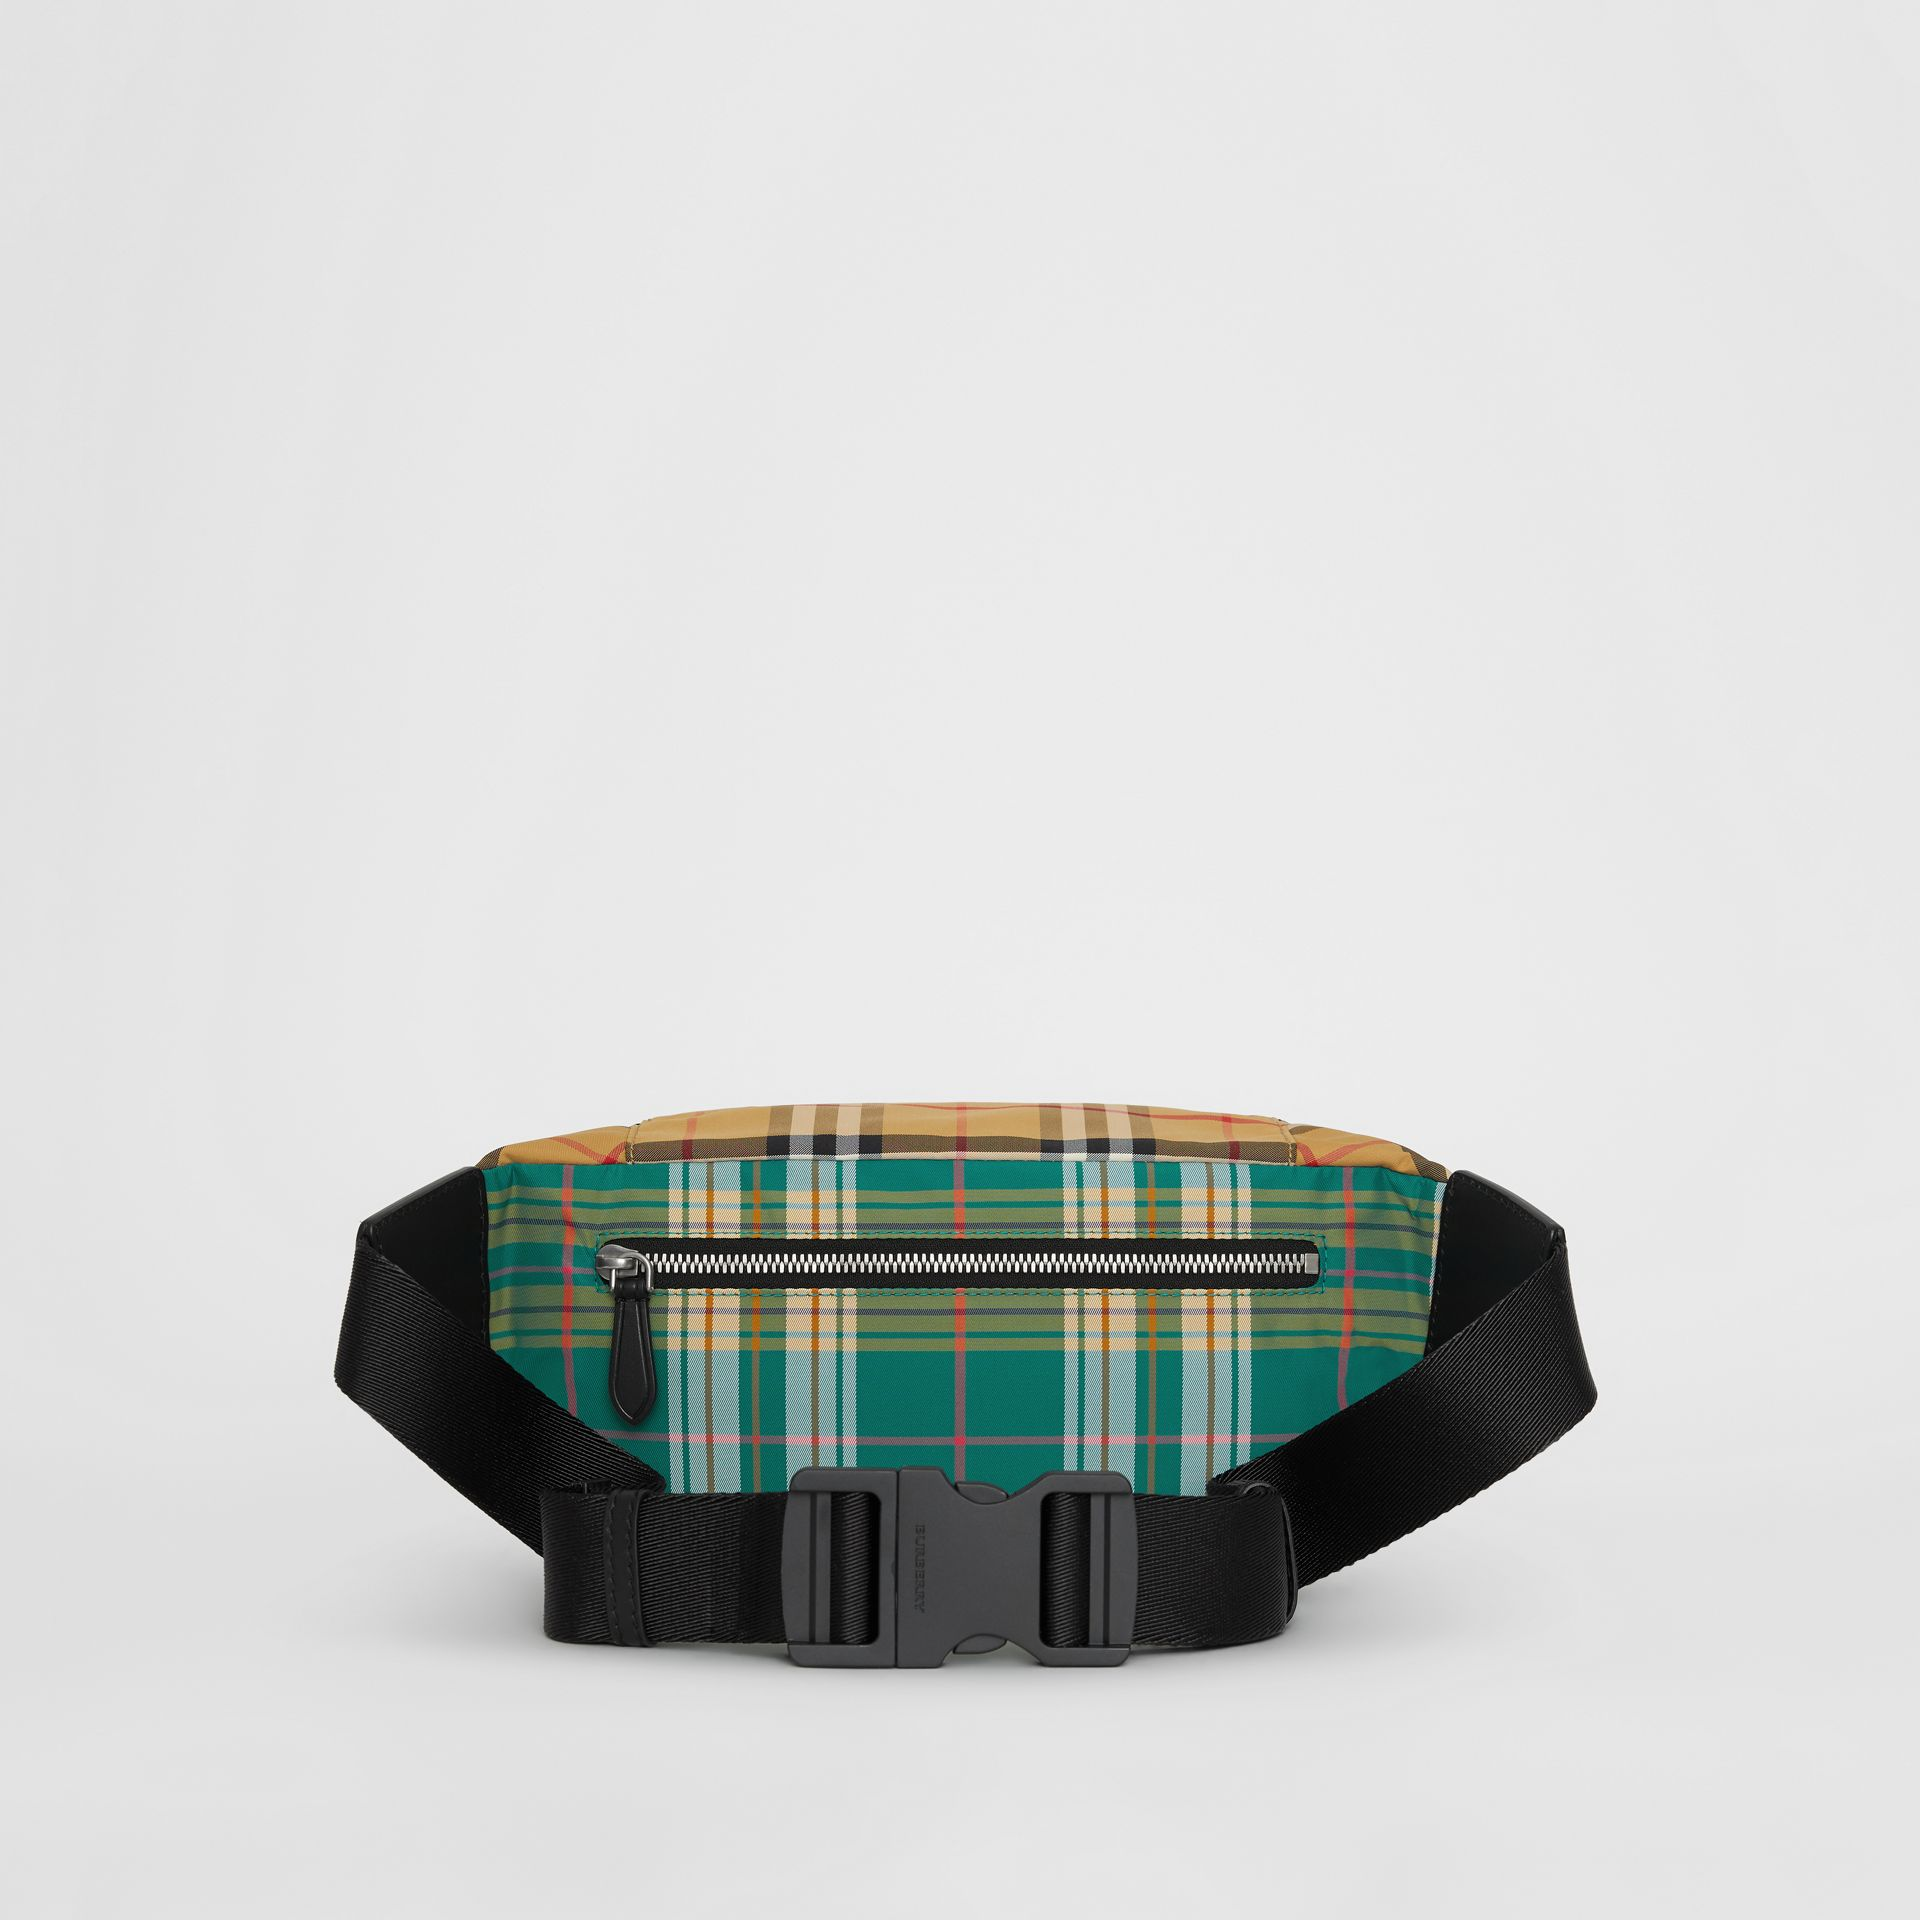 Medium Vintage Check and Tartan Bum Bag in Pine Green | Burberry Australia - gallery image 7